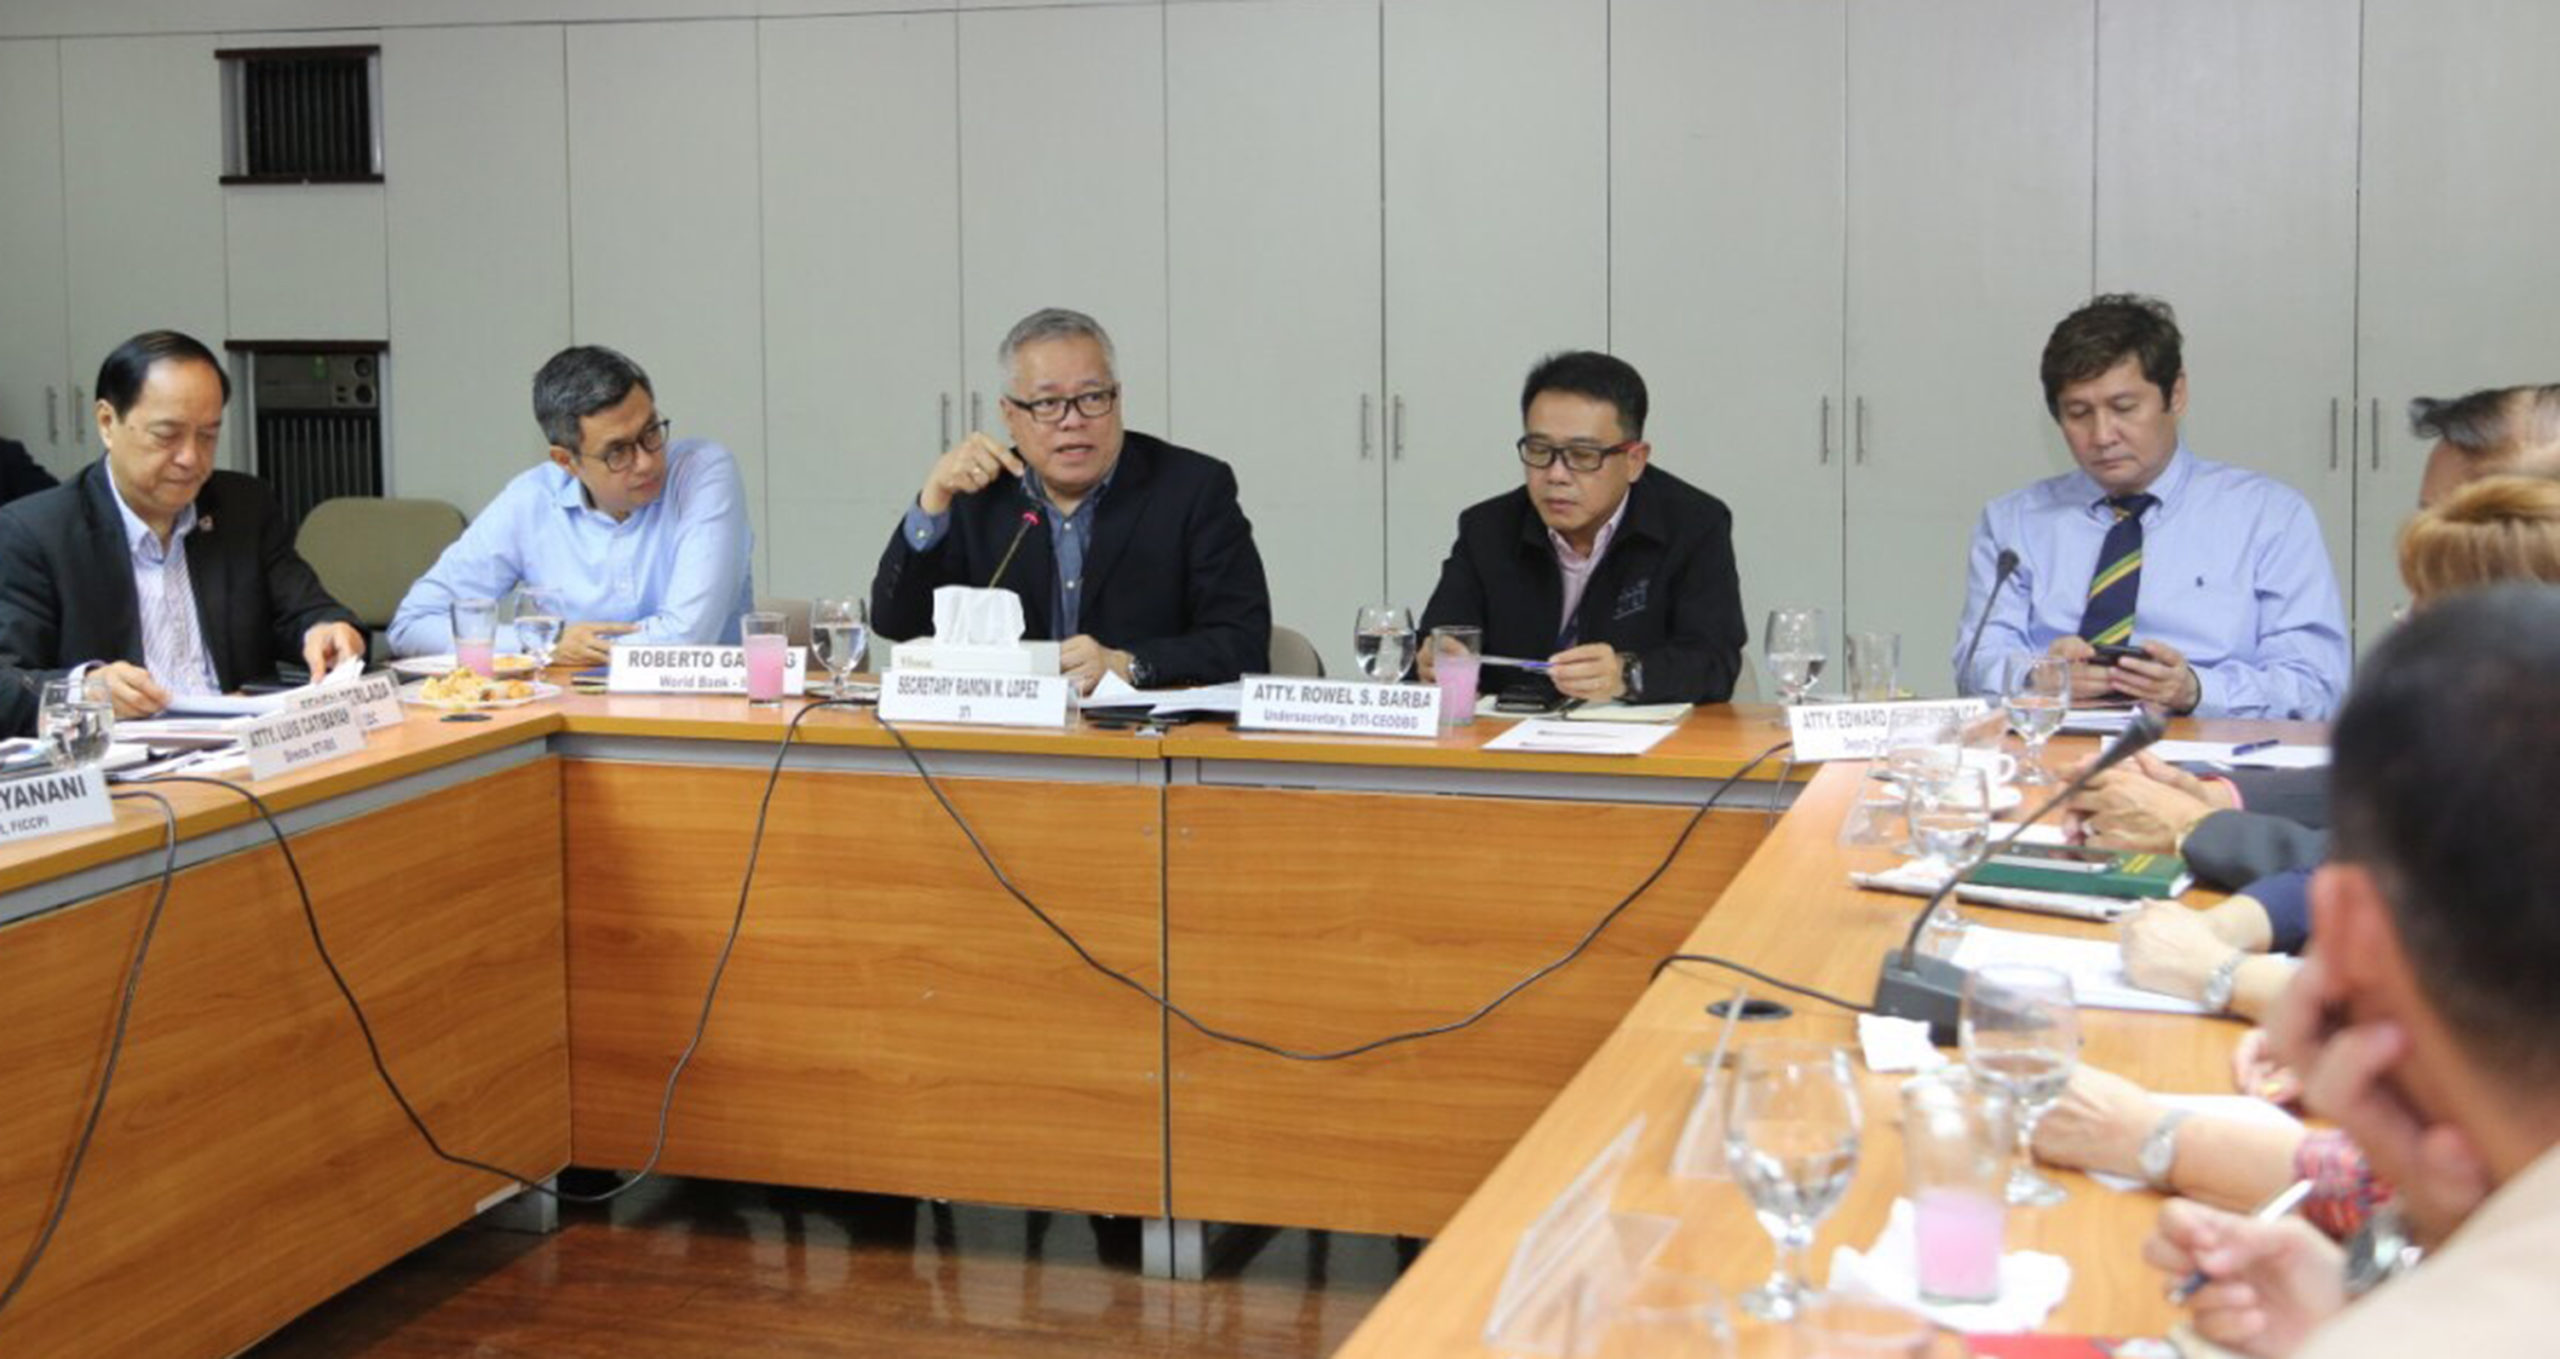 Government acted on business sectors concern on high shipping costs, port congestion